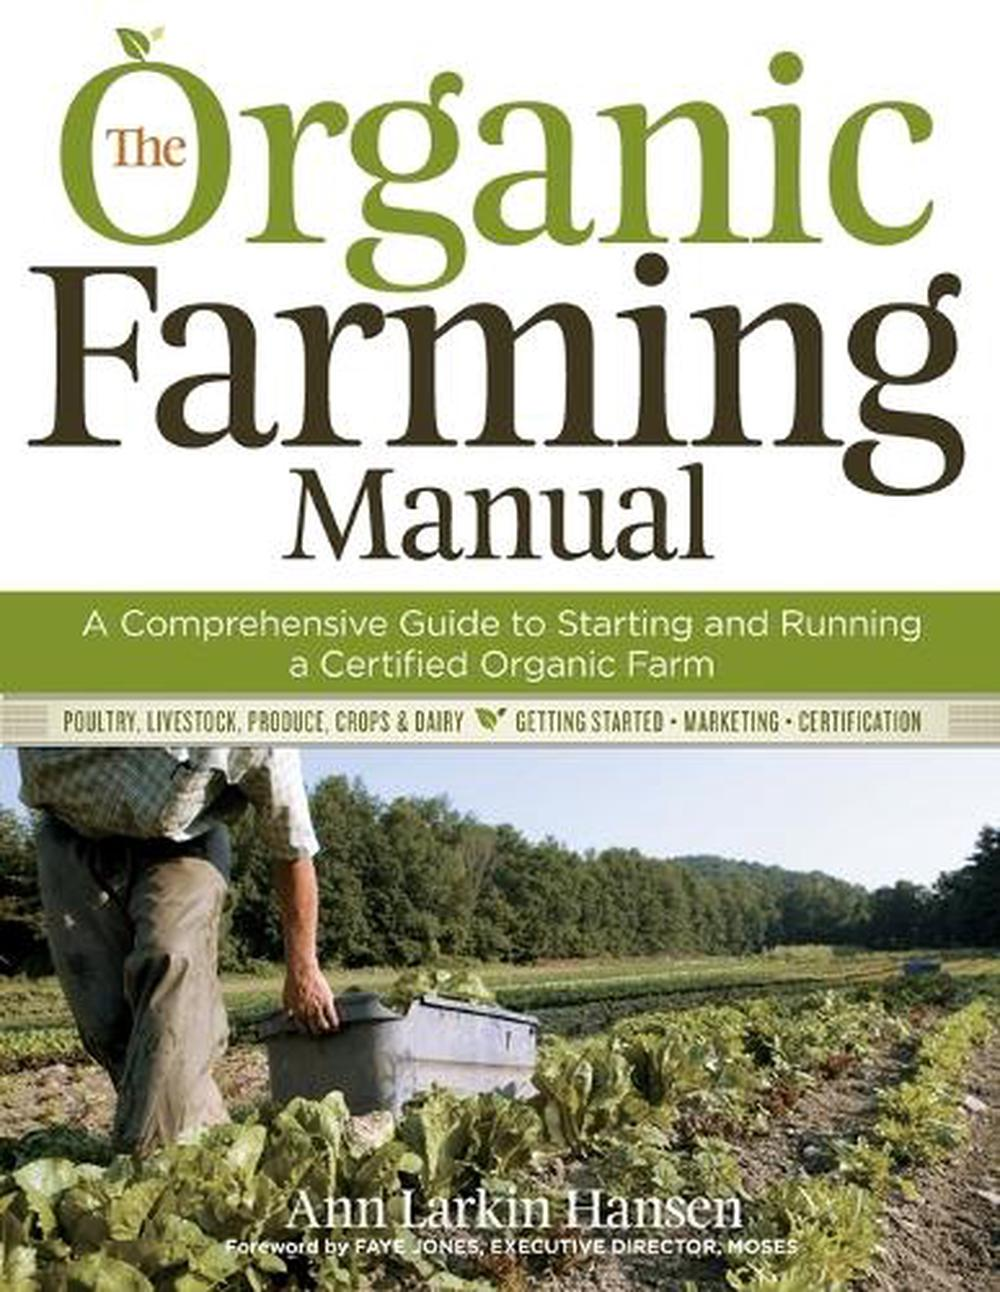 Cellular Agriculture Manual Guide